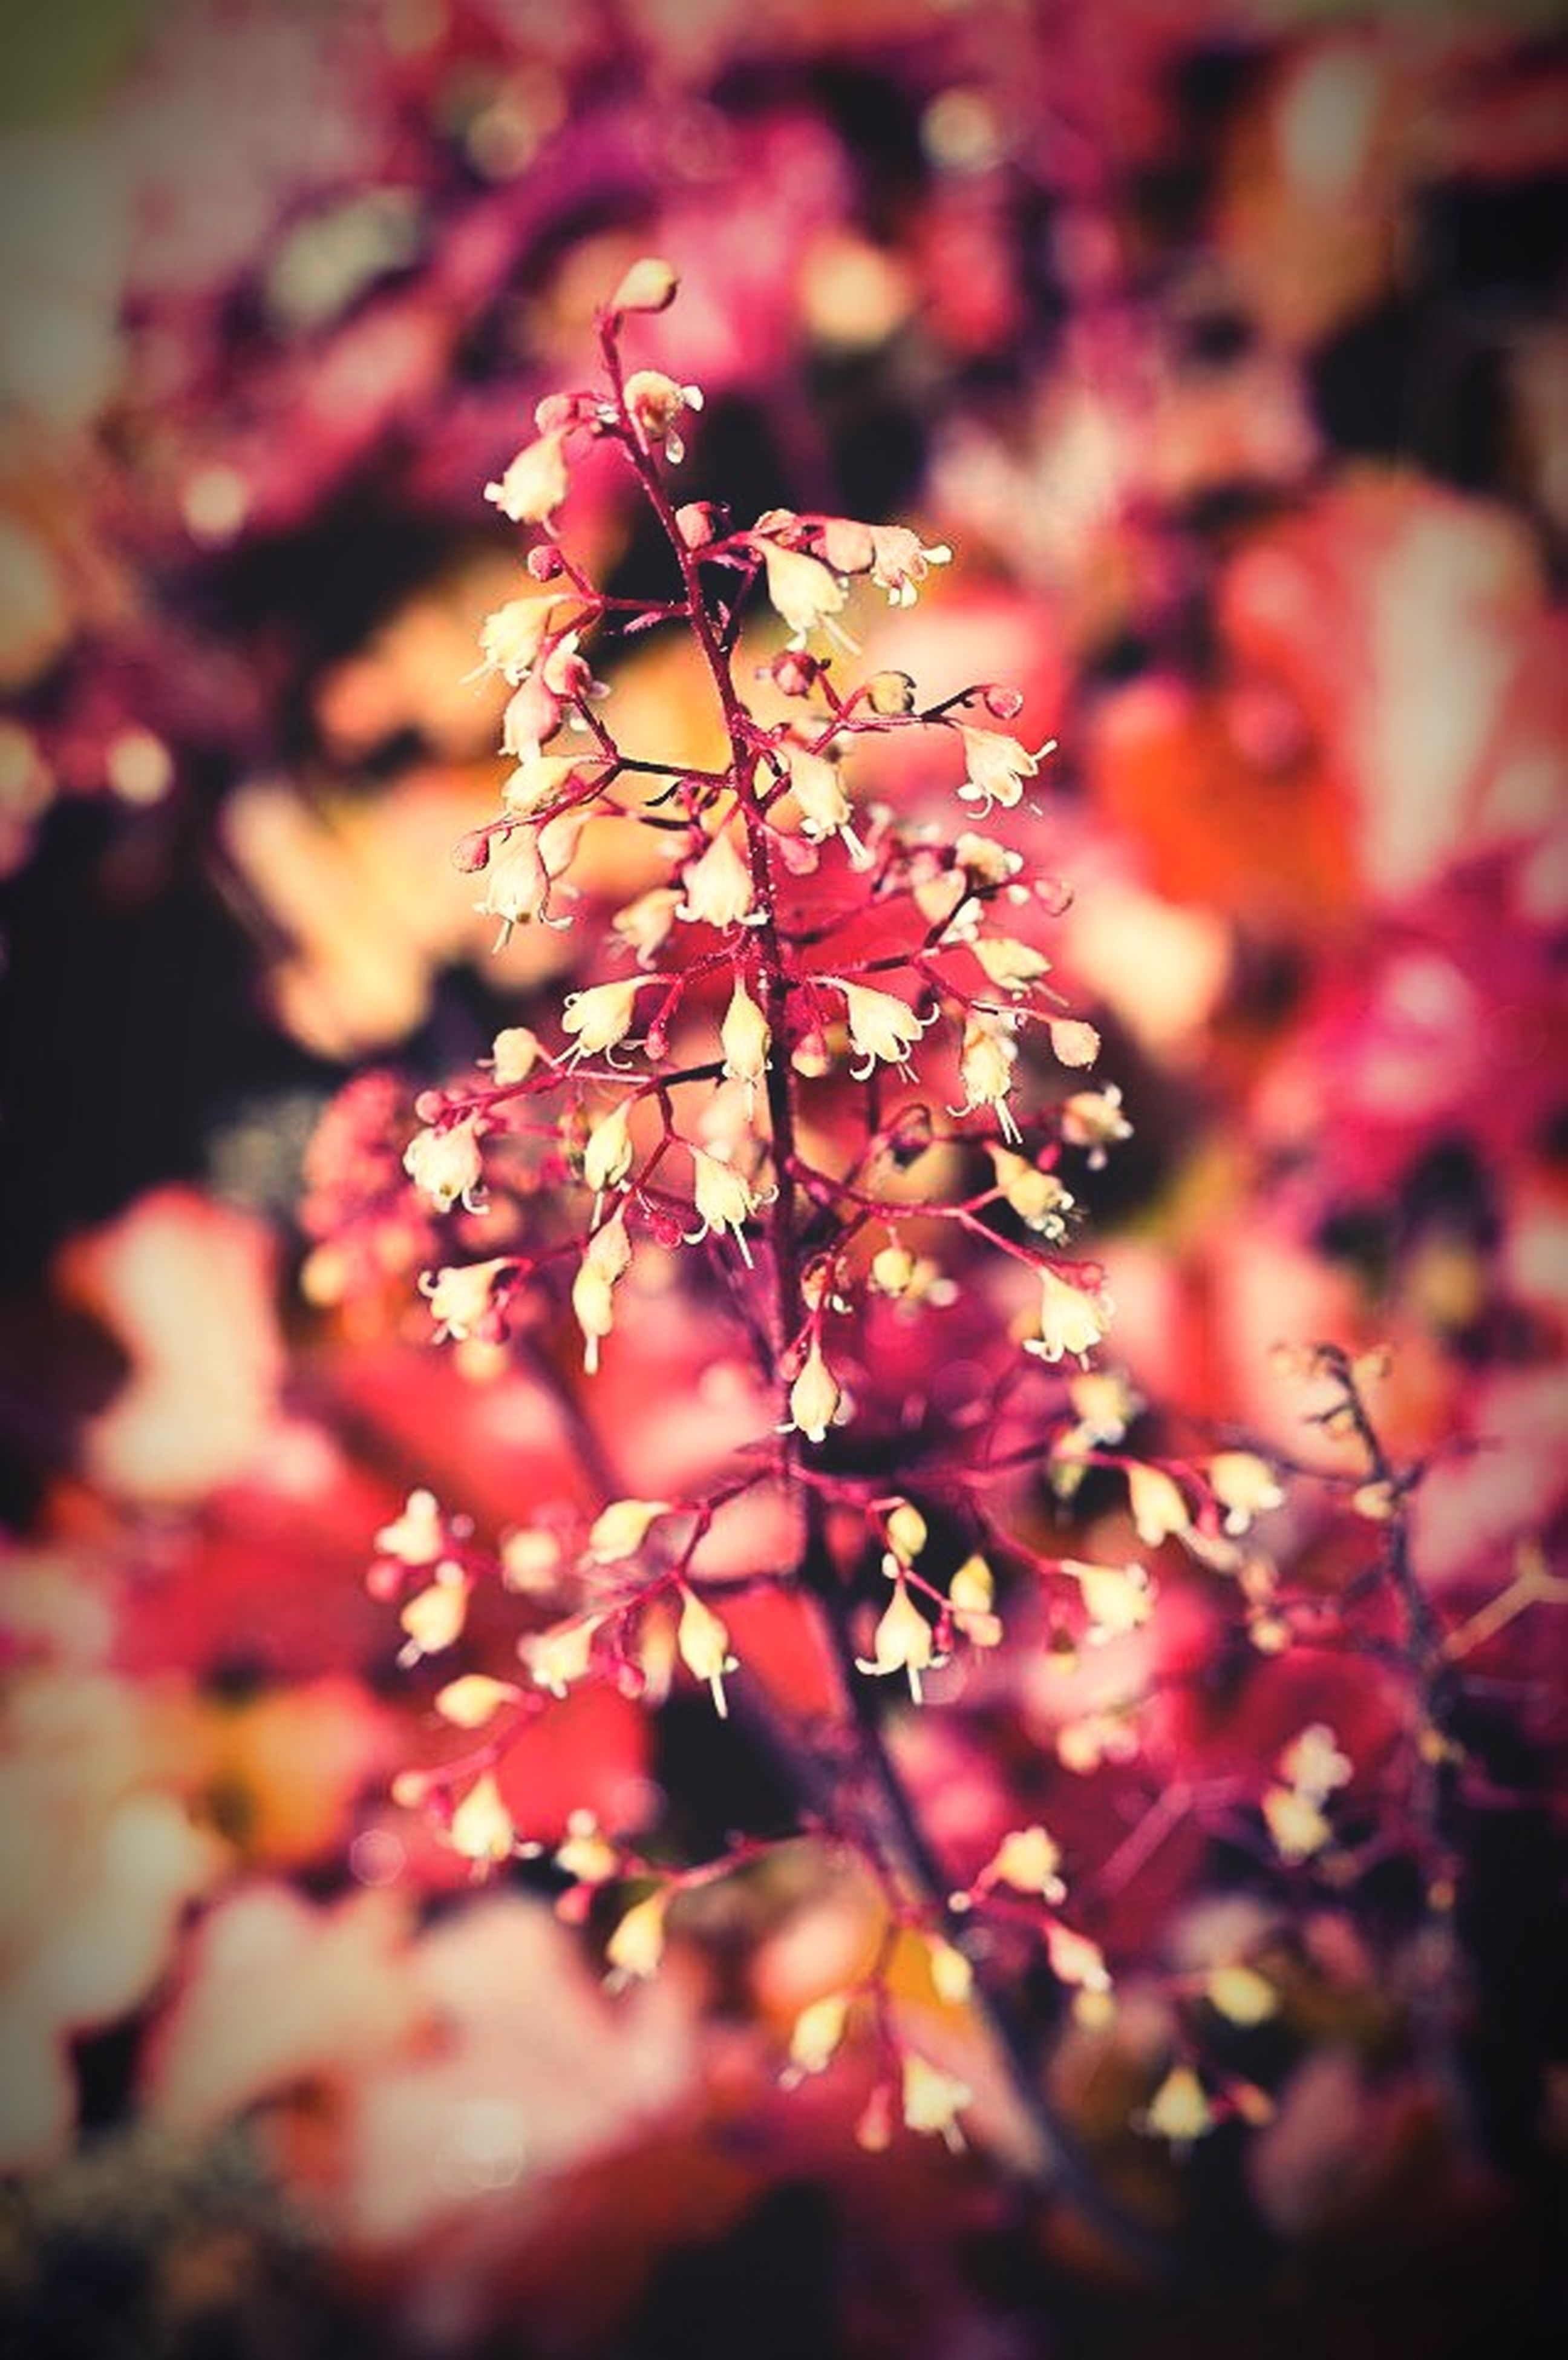 flower, freshness, growth, focus on foreground, beauty in nature, branch, fragility, nature, close-up, tree, petal, selective focus, blossom, twig, pink color, outdoors, blooming, day, season, plant